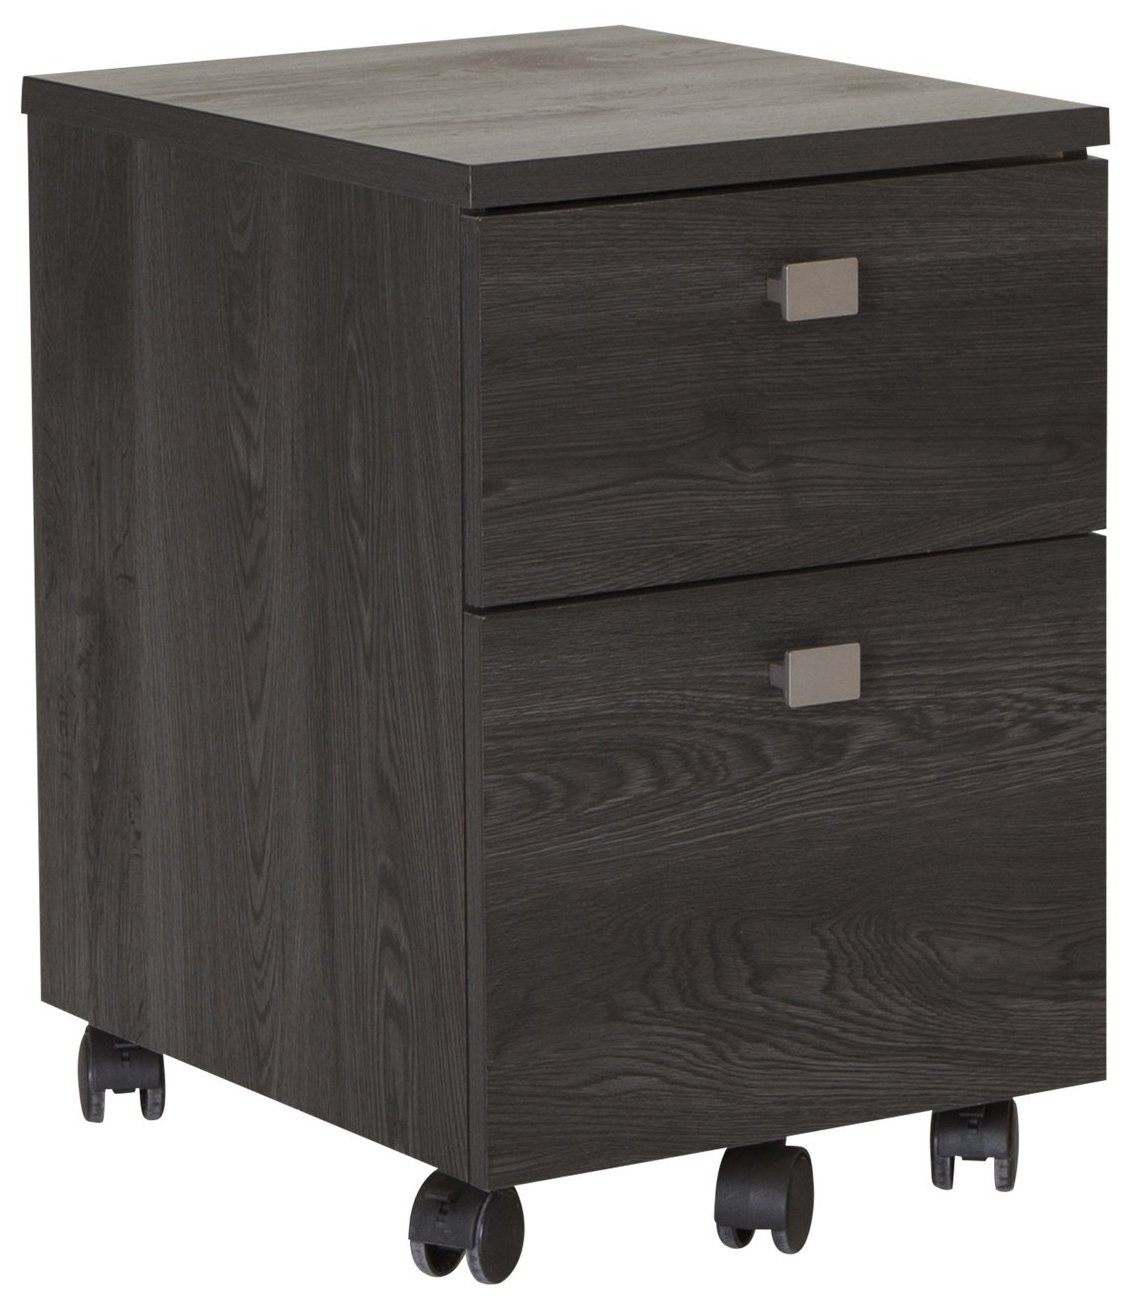 South Shore 2-Drawer Mobile File Cabinet on Casters, Gray Oak by South Shore